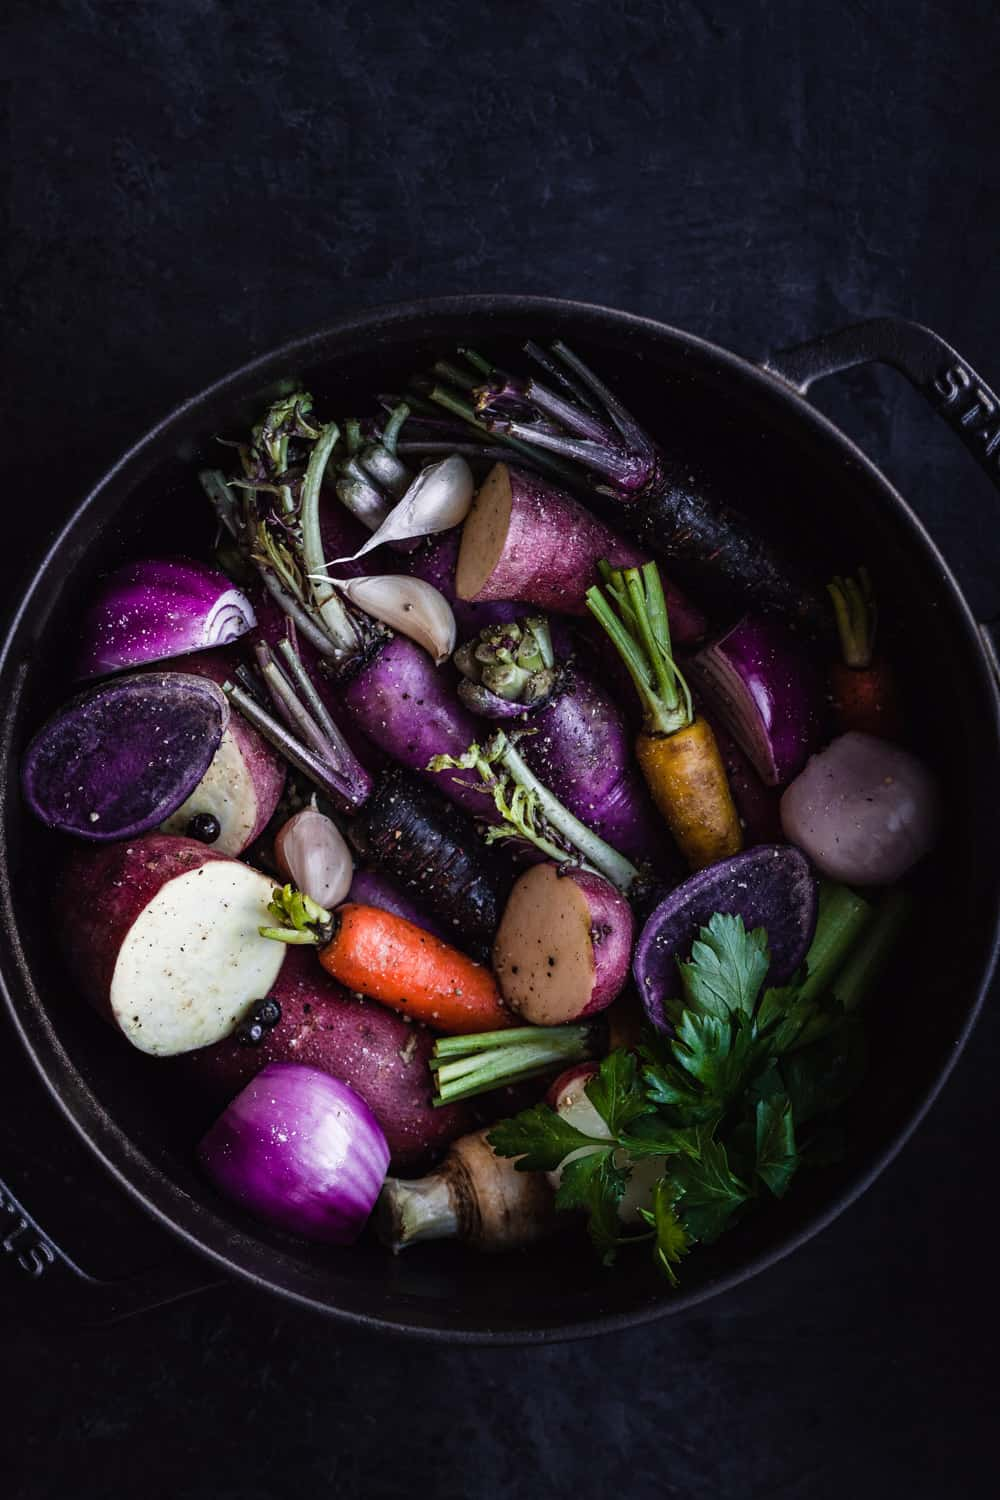 Magic Mineral Broth in the making. A pot filled with potatoes, carrots, yam, garlic, radishes, red onions and some spices.